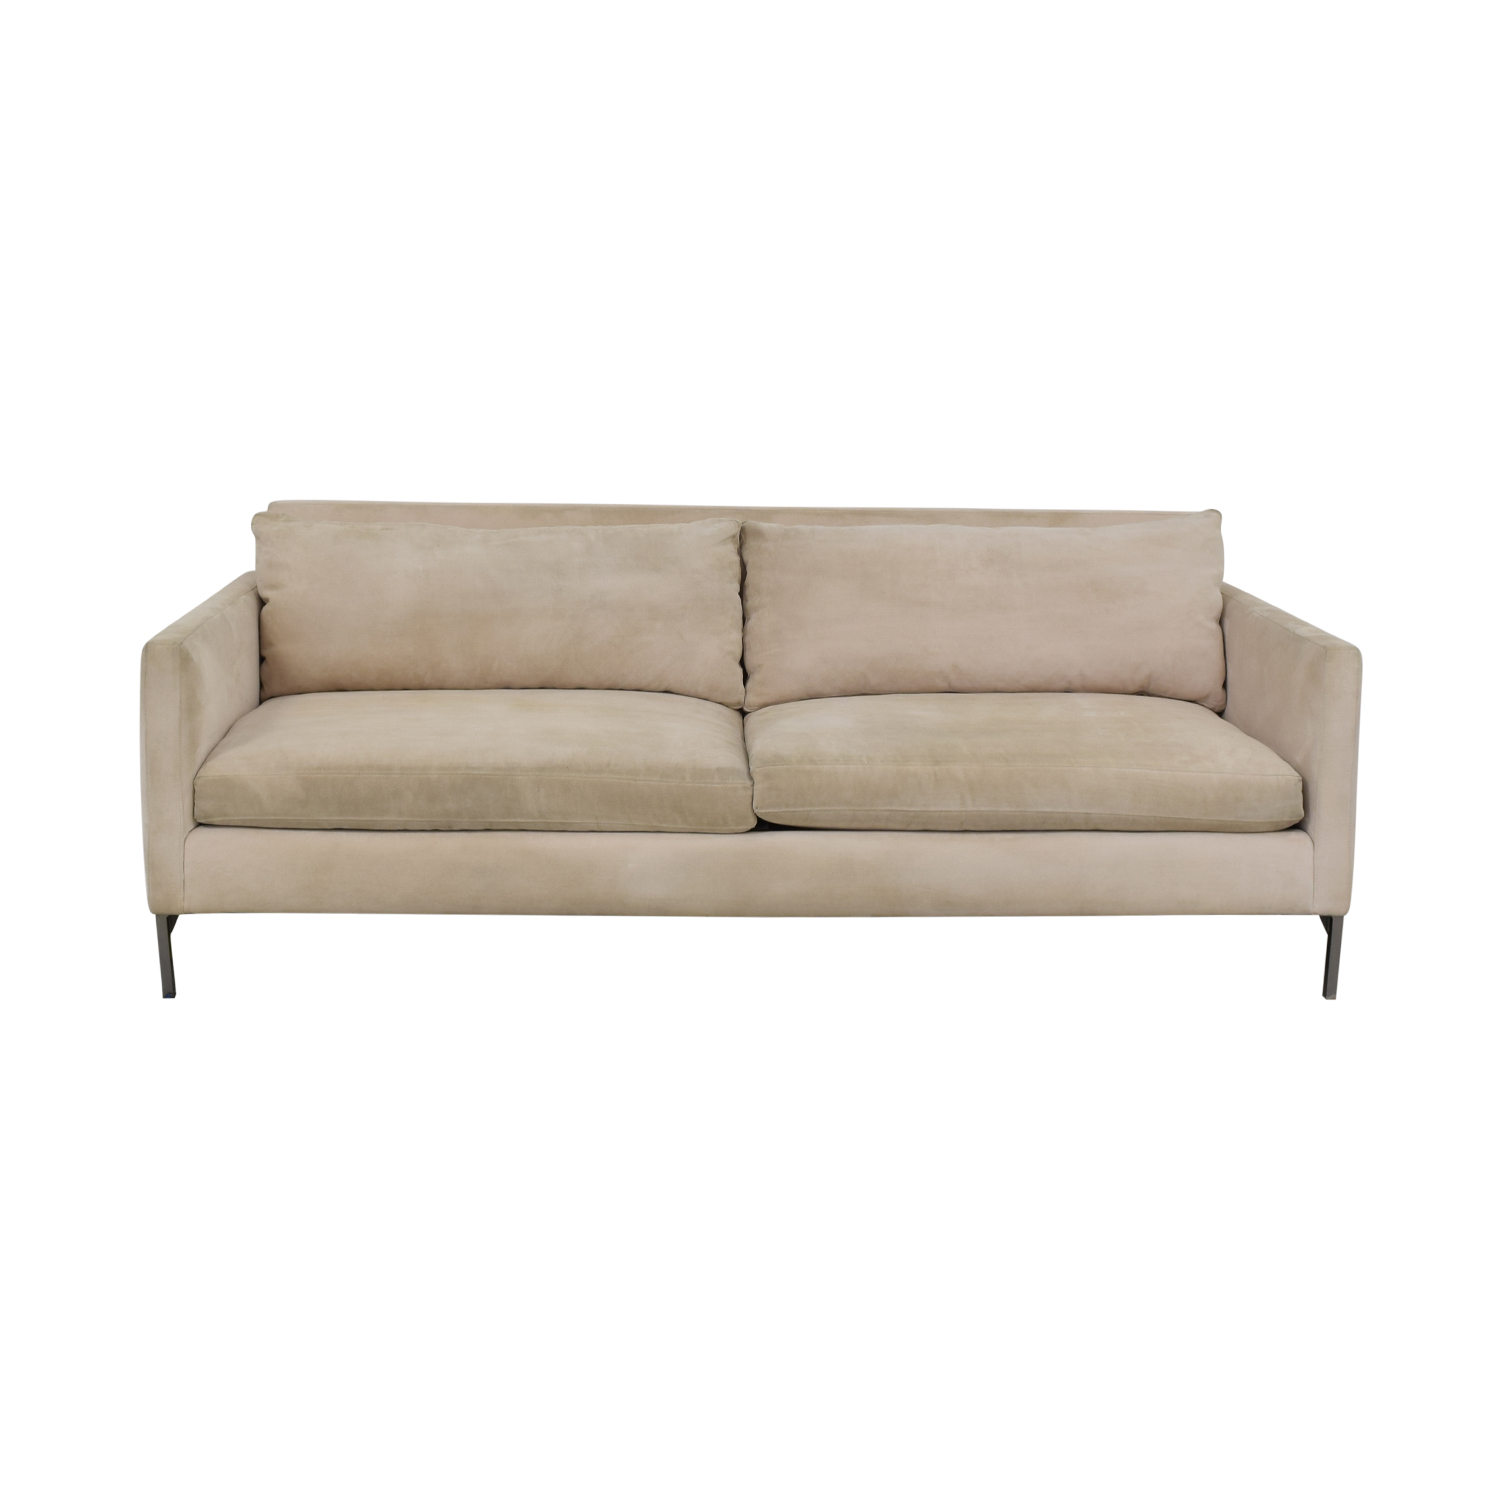 shop ABC Carpet & Home Cobble Hill Nolita Beige Sofa ABC Carpet & Home